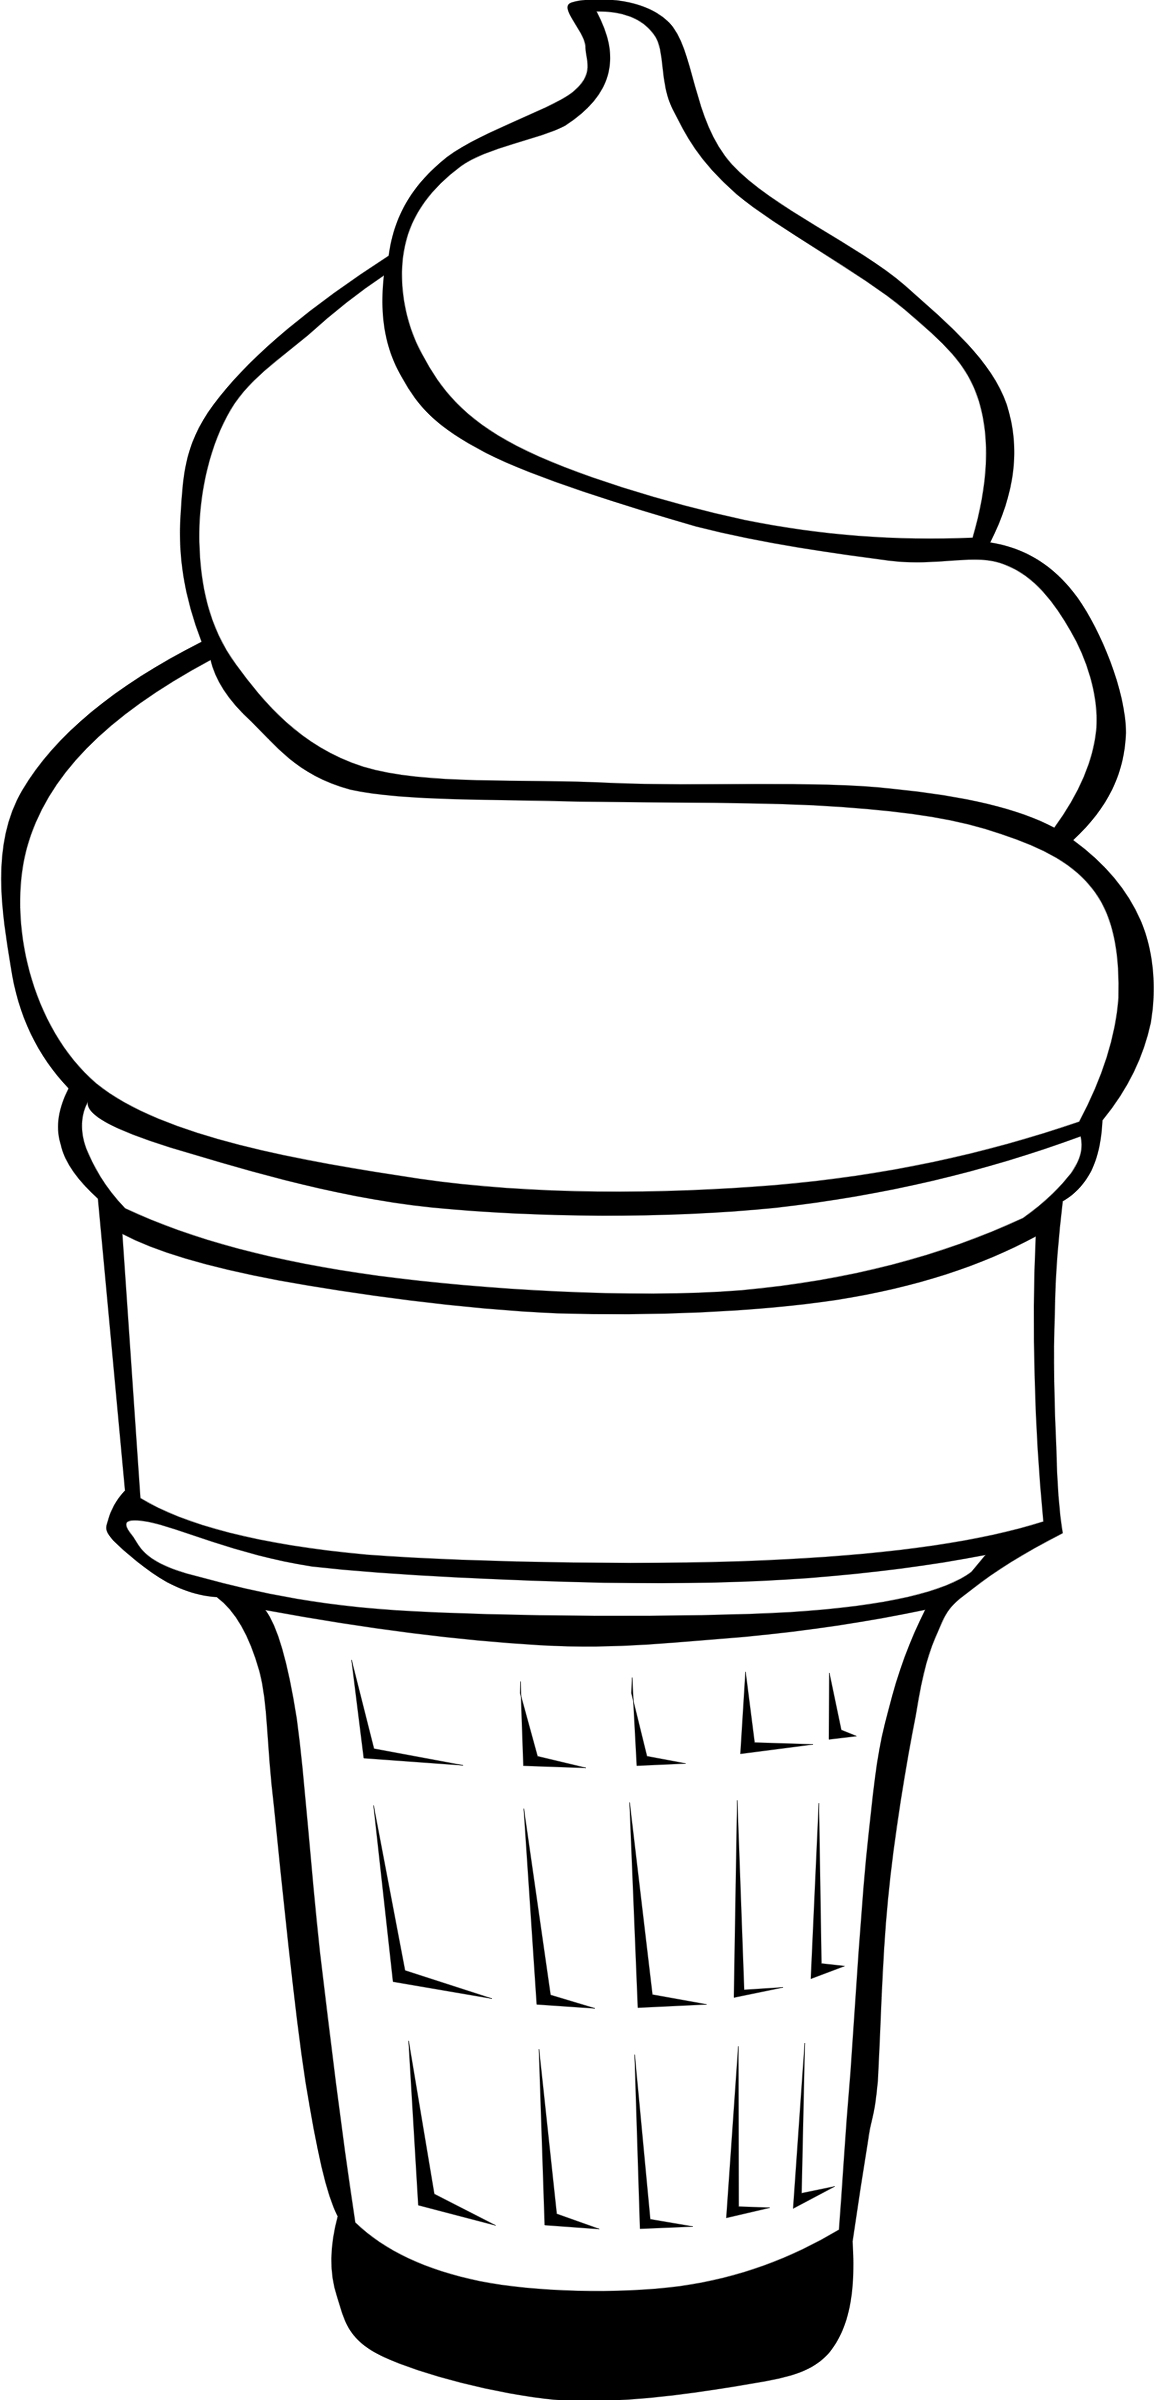 Ice Cream Cone Line Drawing At Getdrawings